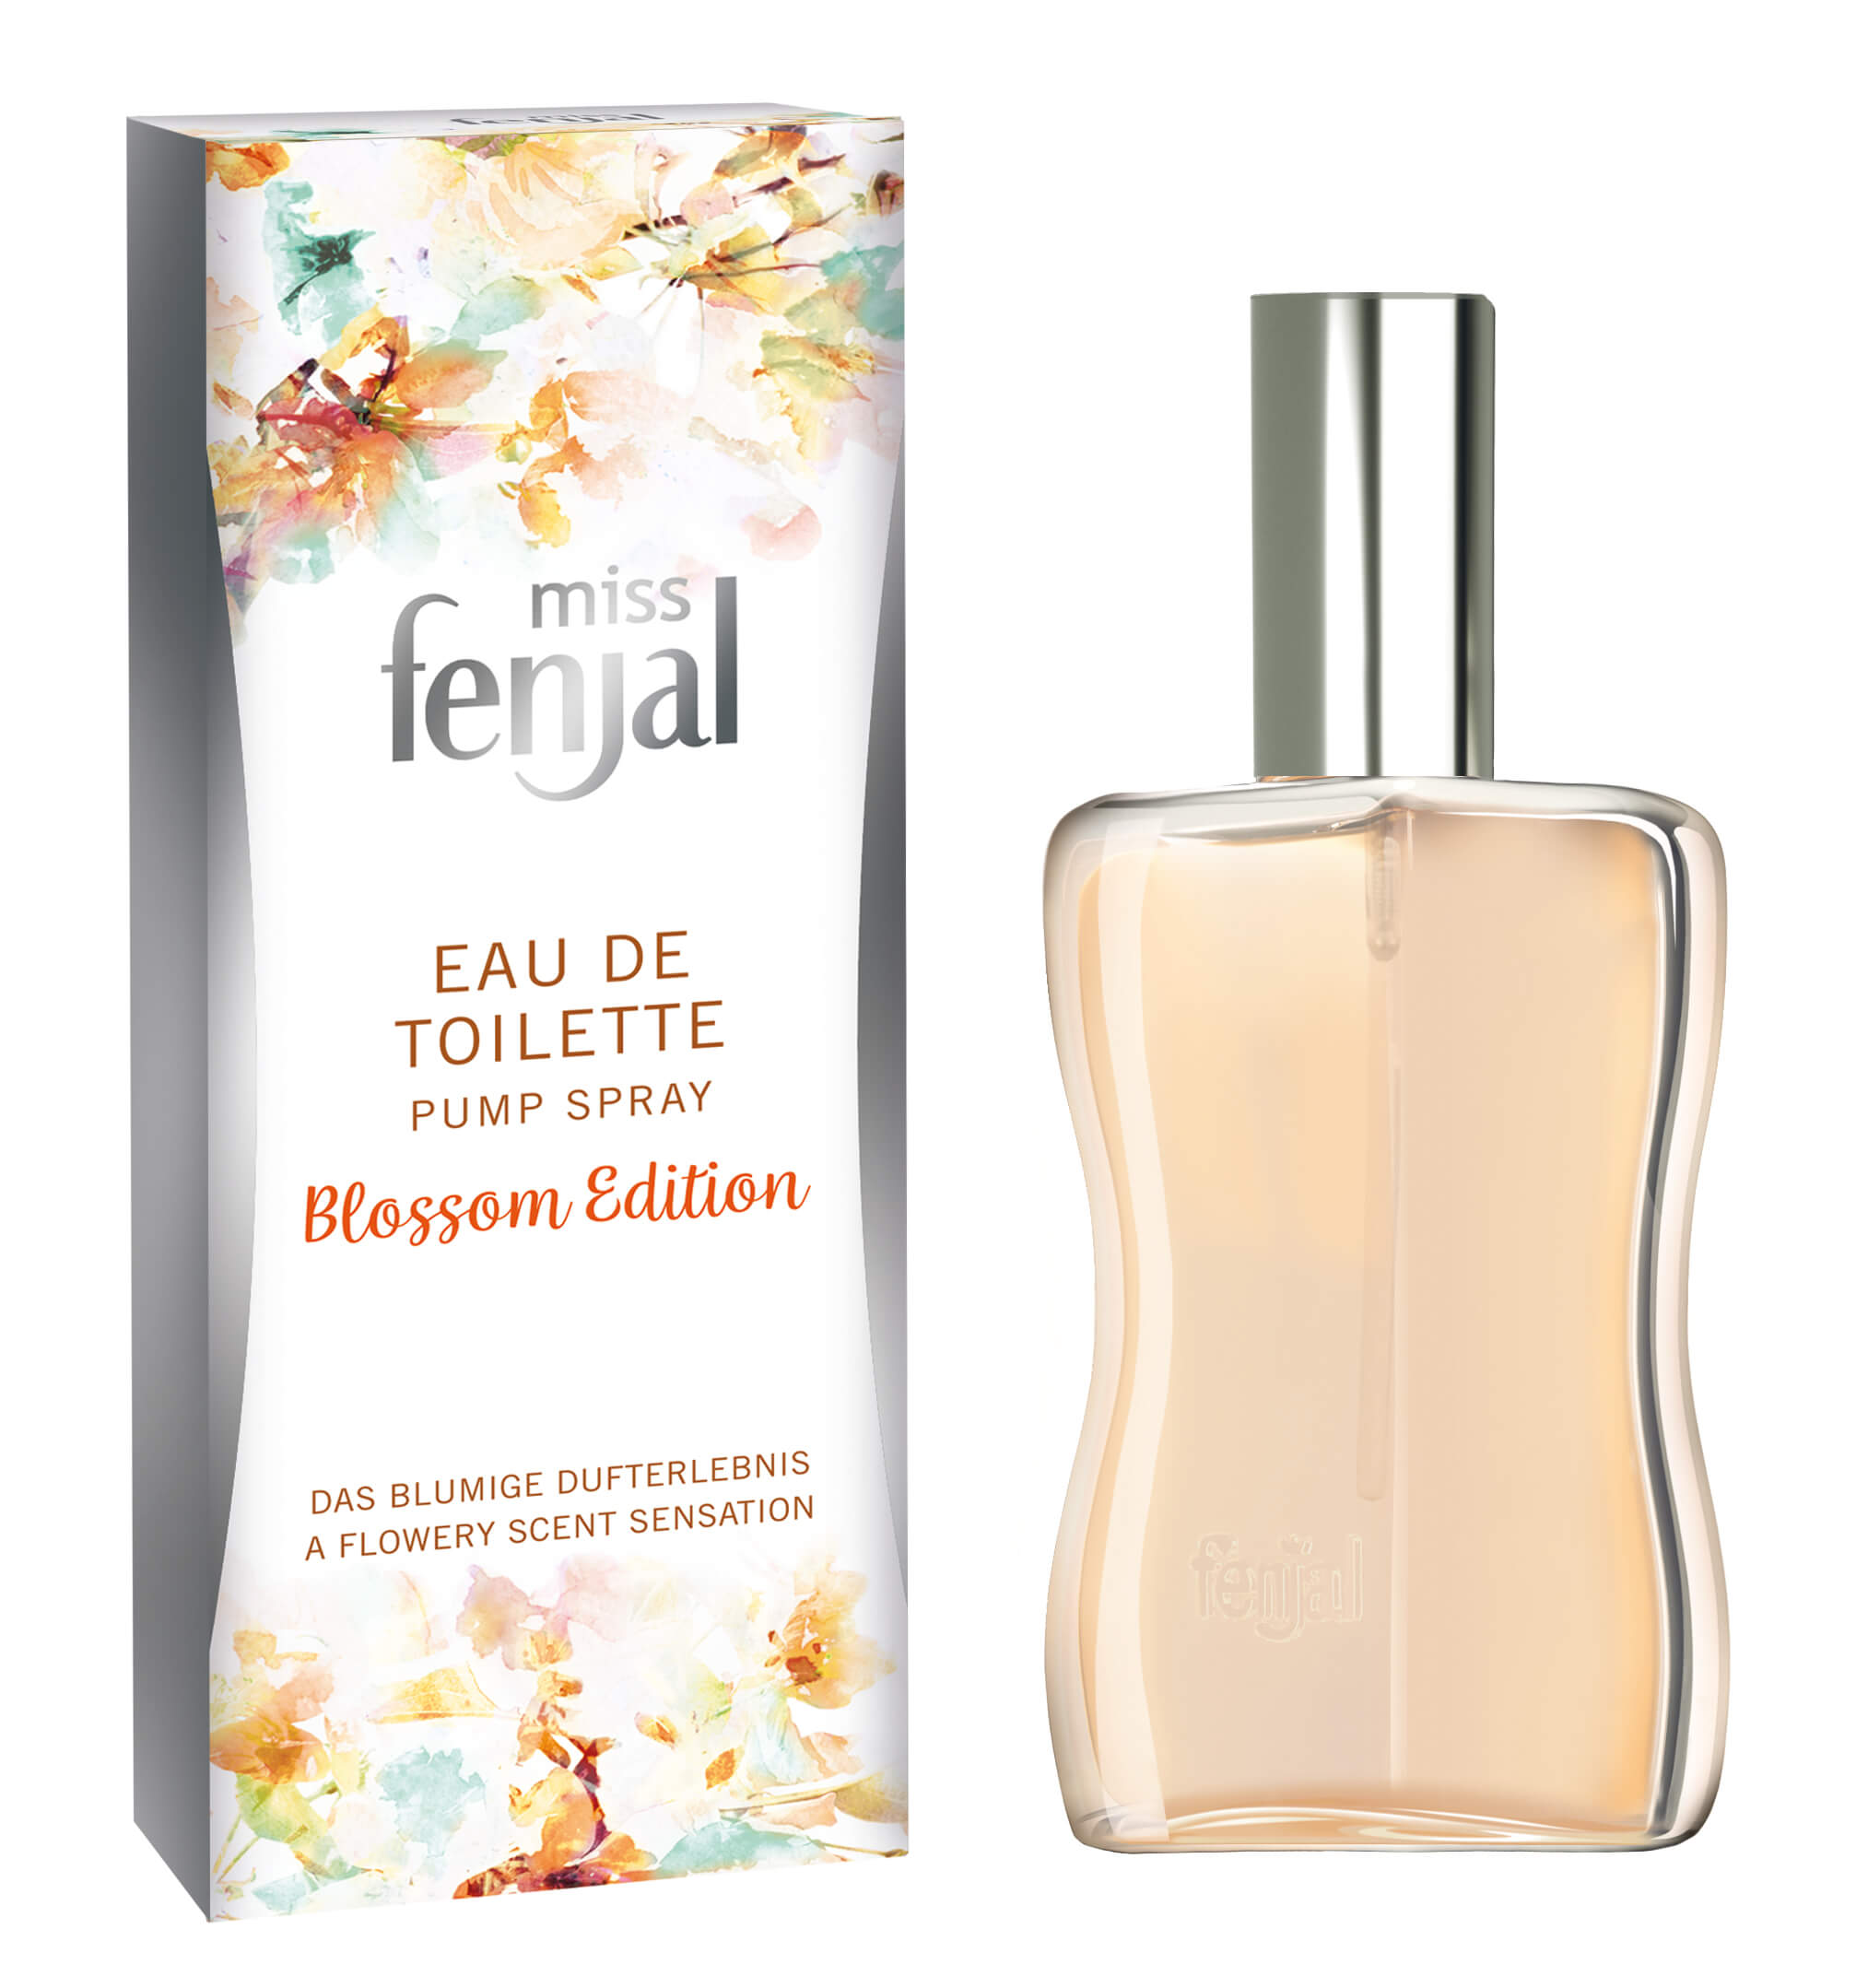 FENJAL MISS Blossom Edition EdT 50ml